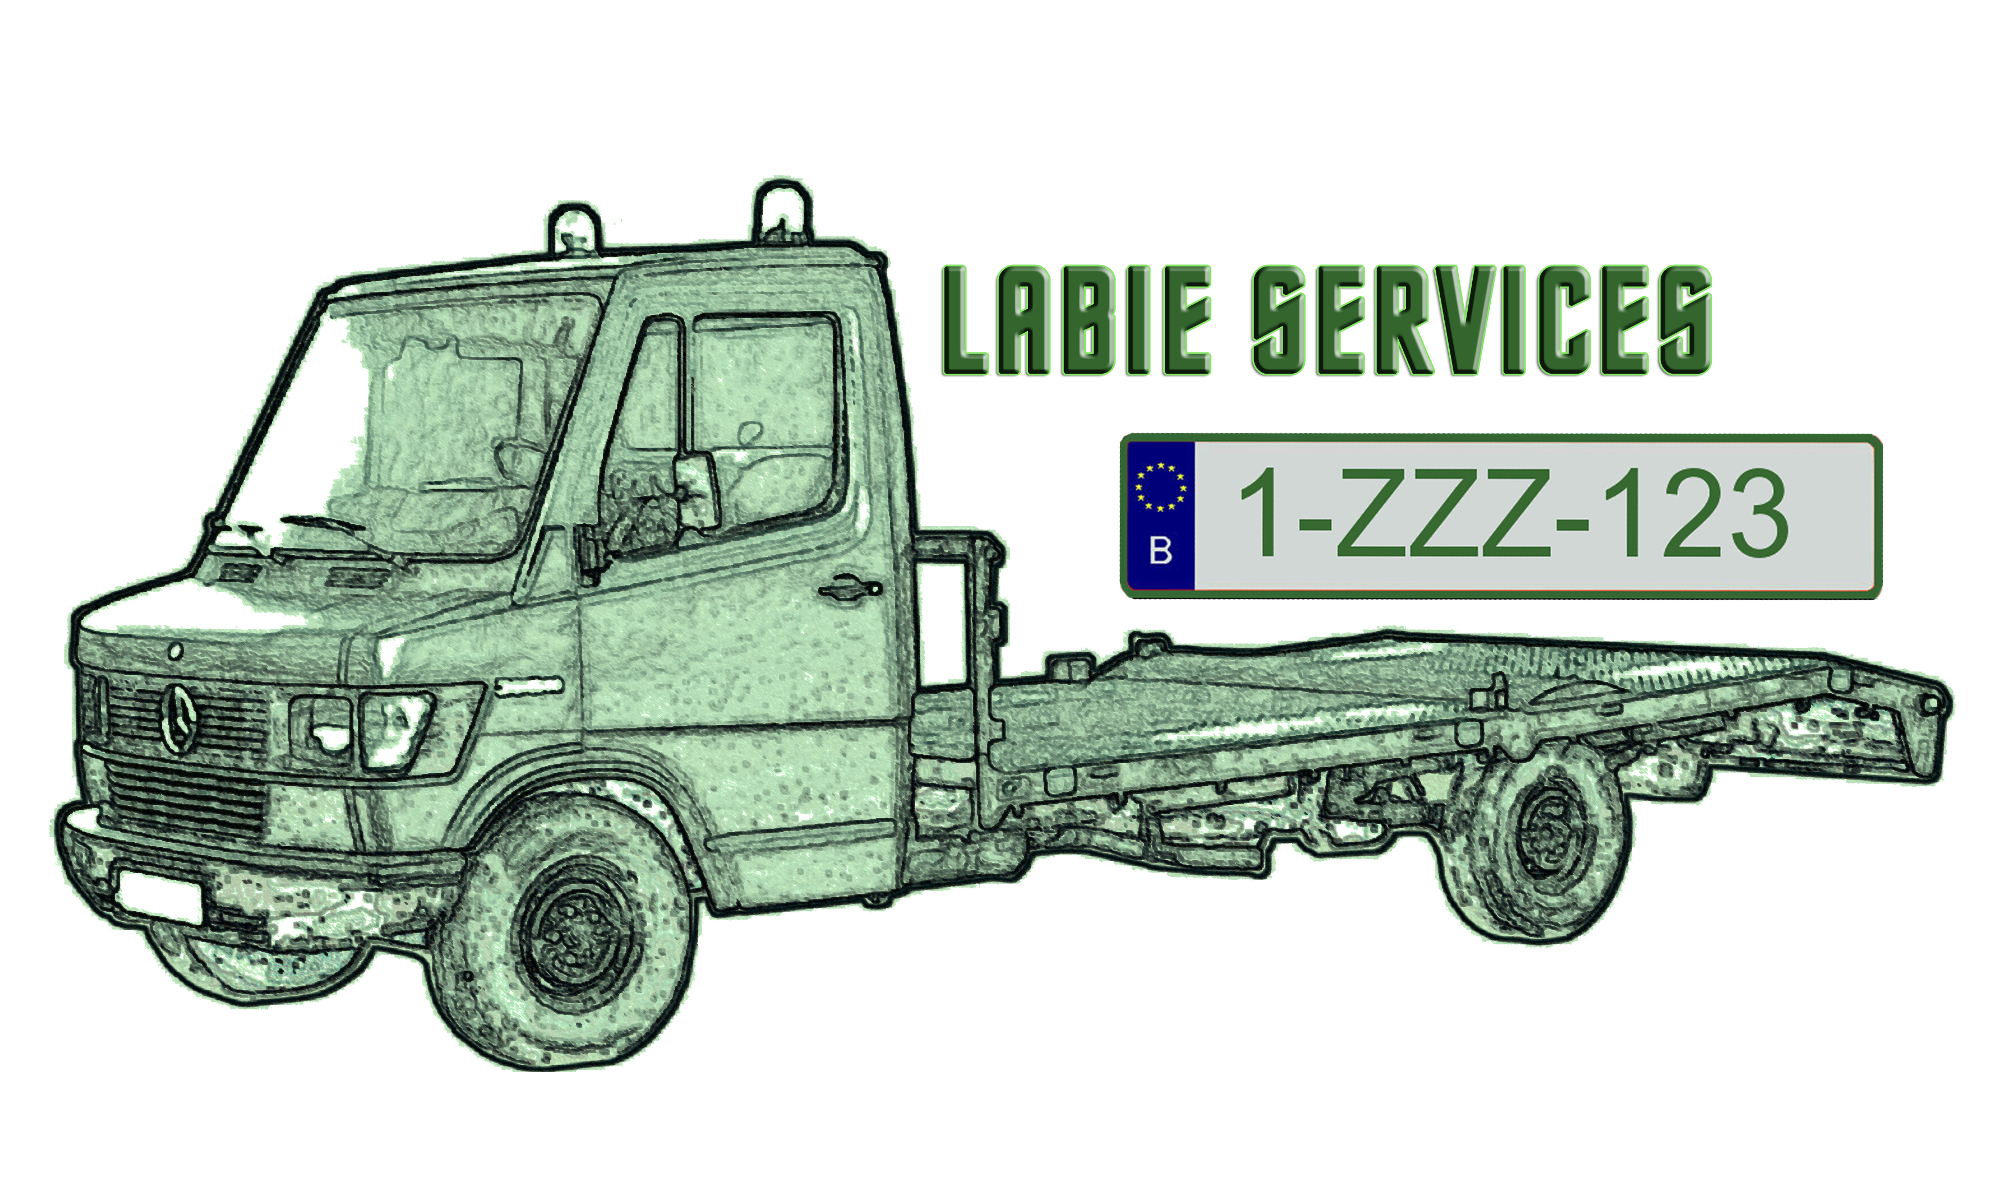 Labie Services